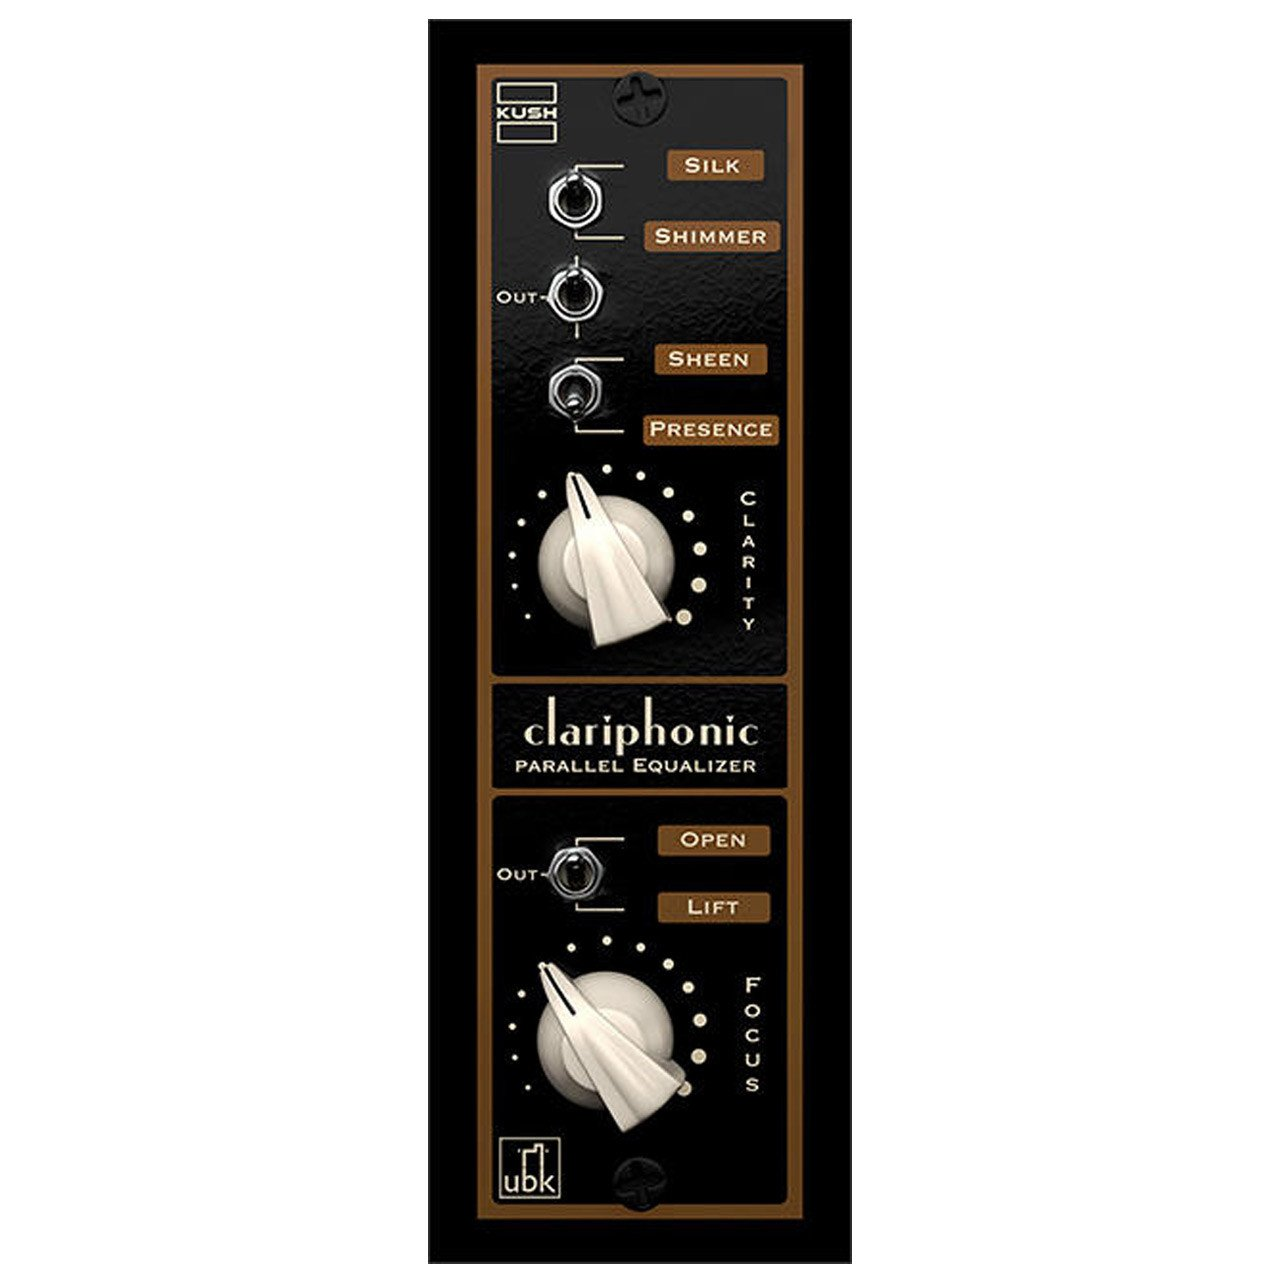 Kush Audio UBK Clariphonic 500 Parallel Equalizer